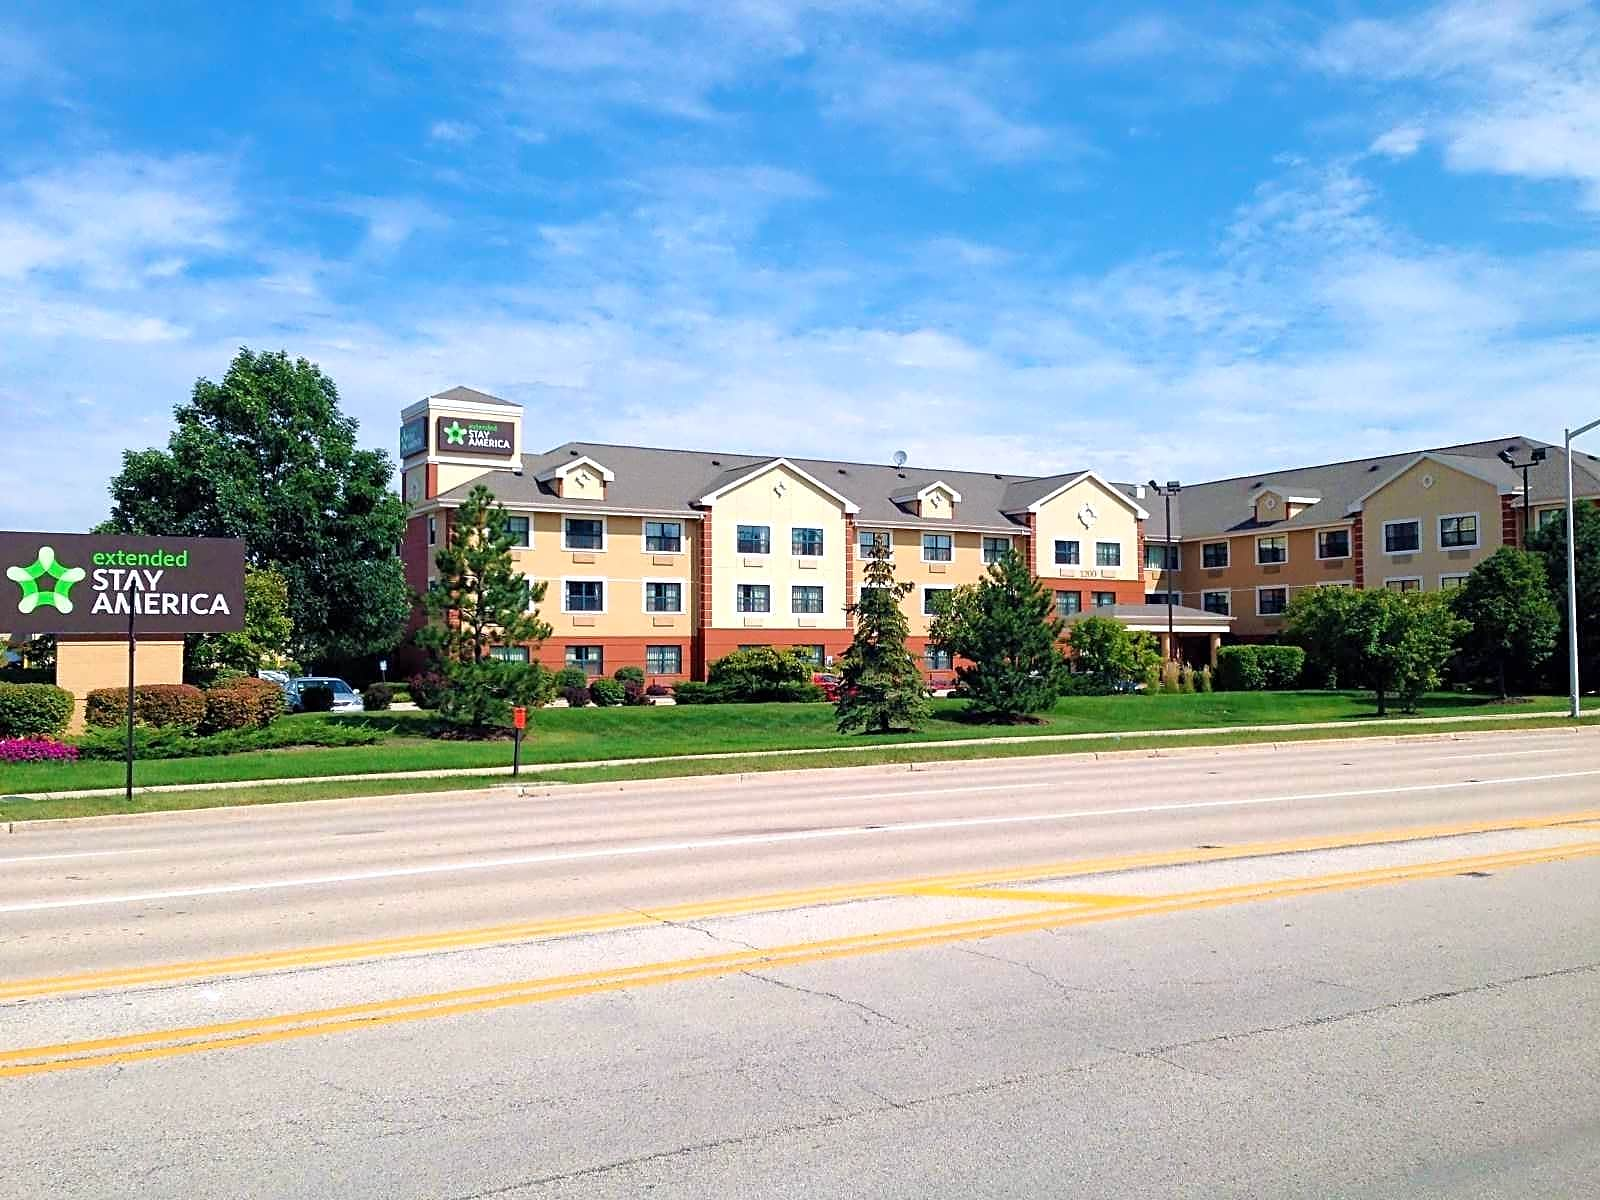 Apartments Near AIU Online Furnished Studio - Chicago - Woodfield Mall for American Intercontinental University Online Students in Hoffman Estates, IL